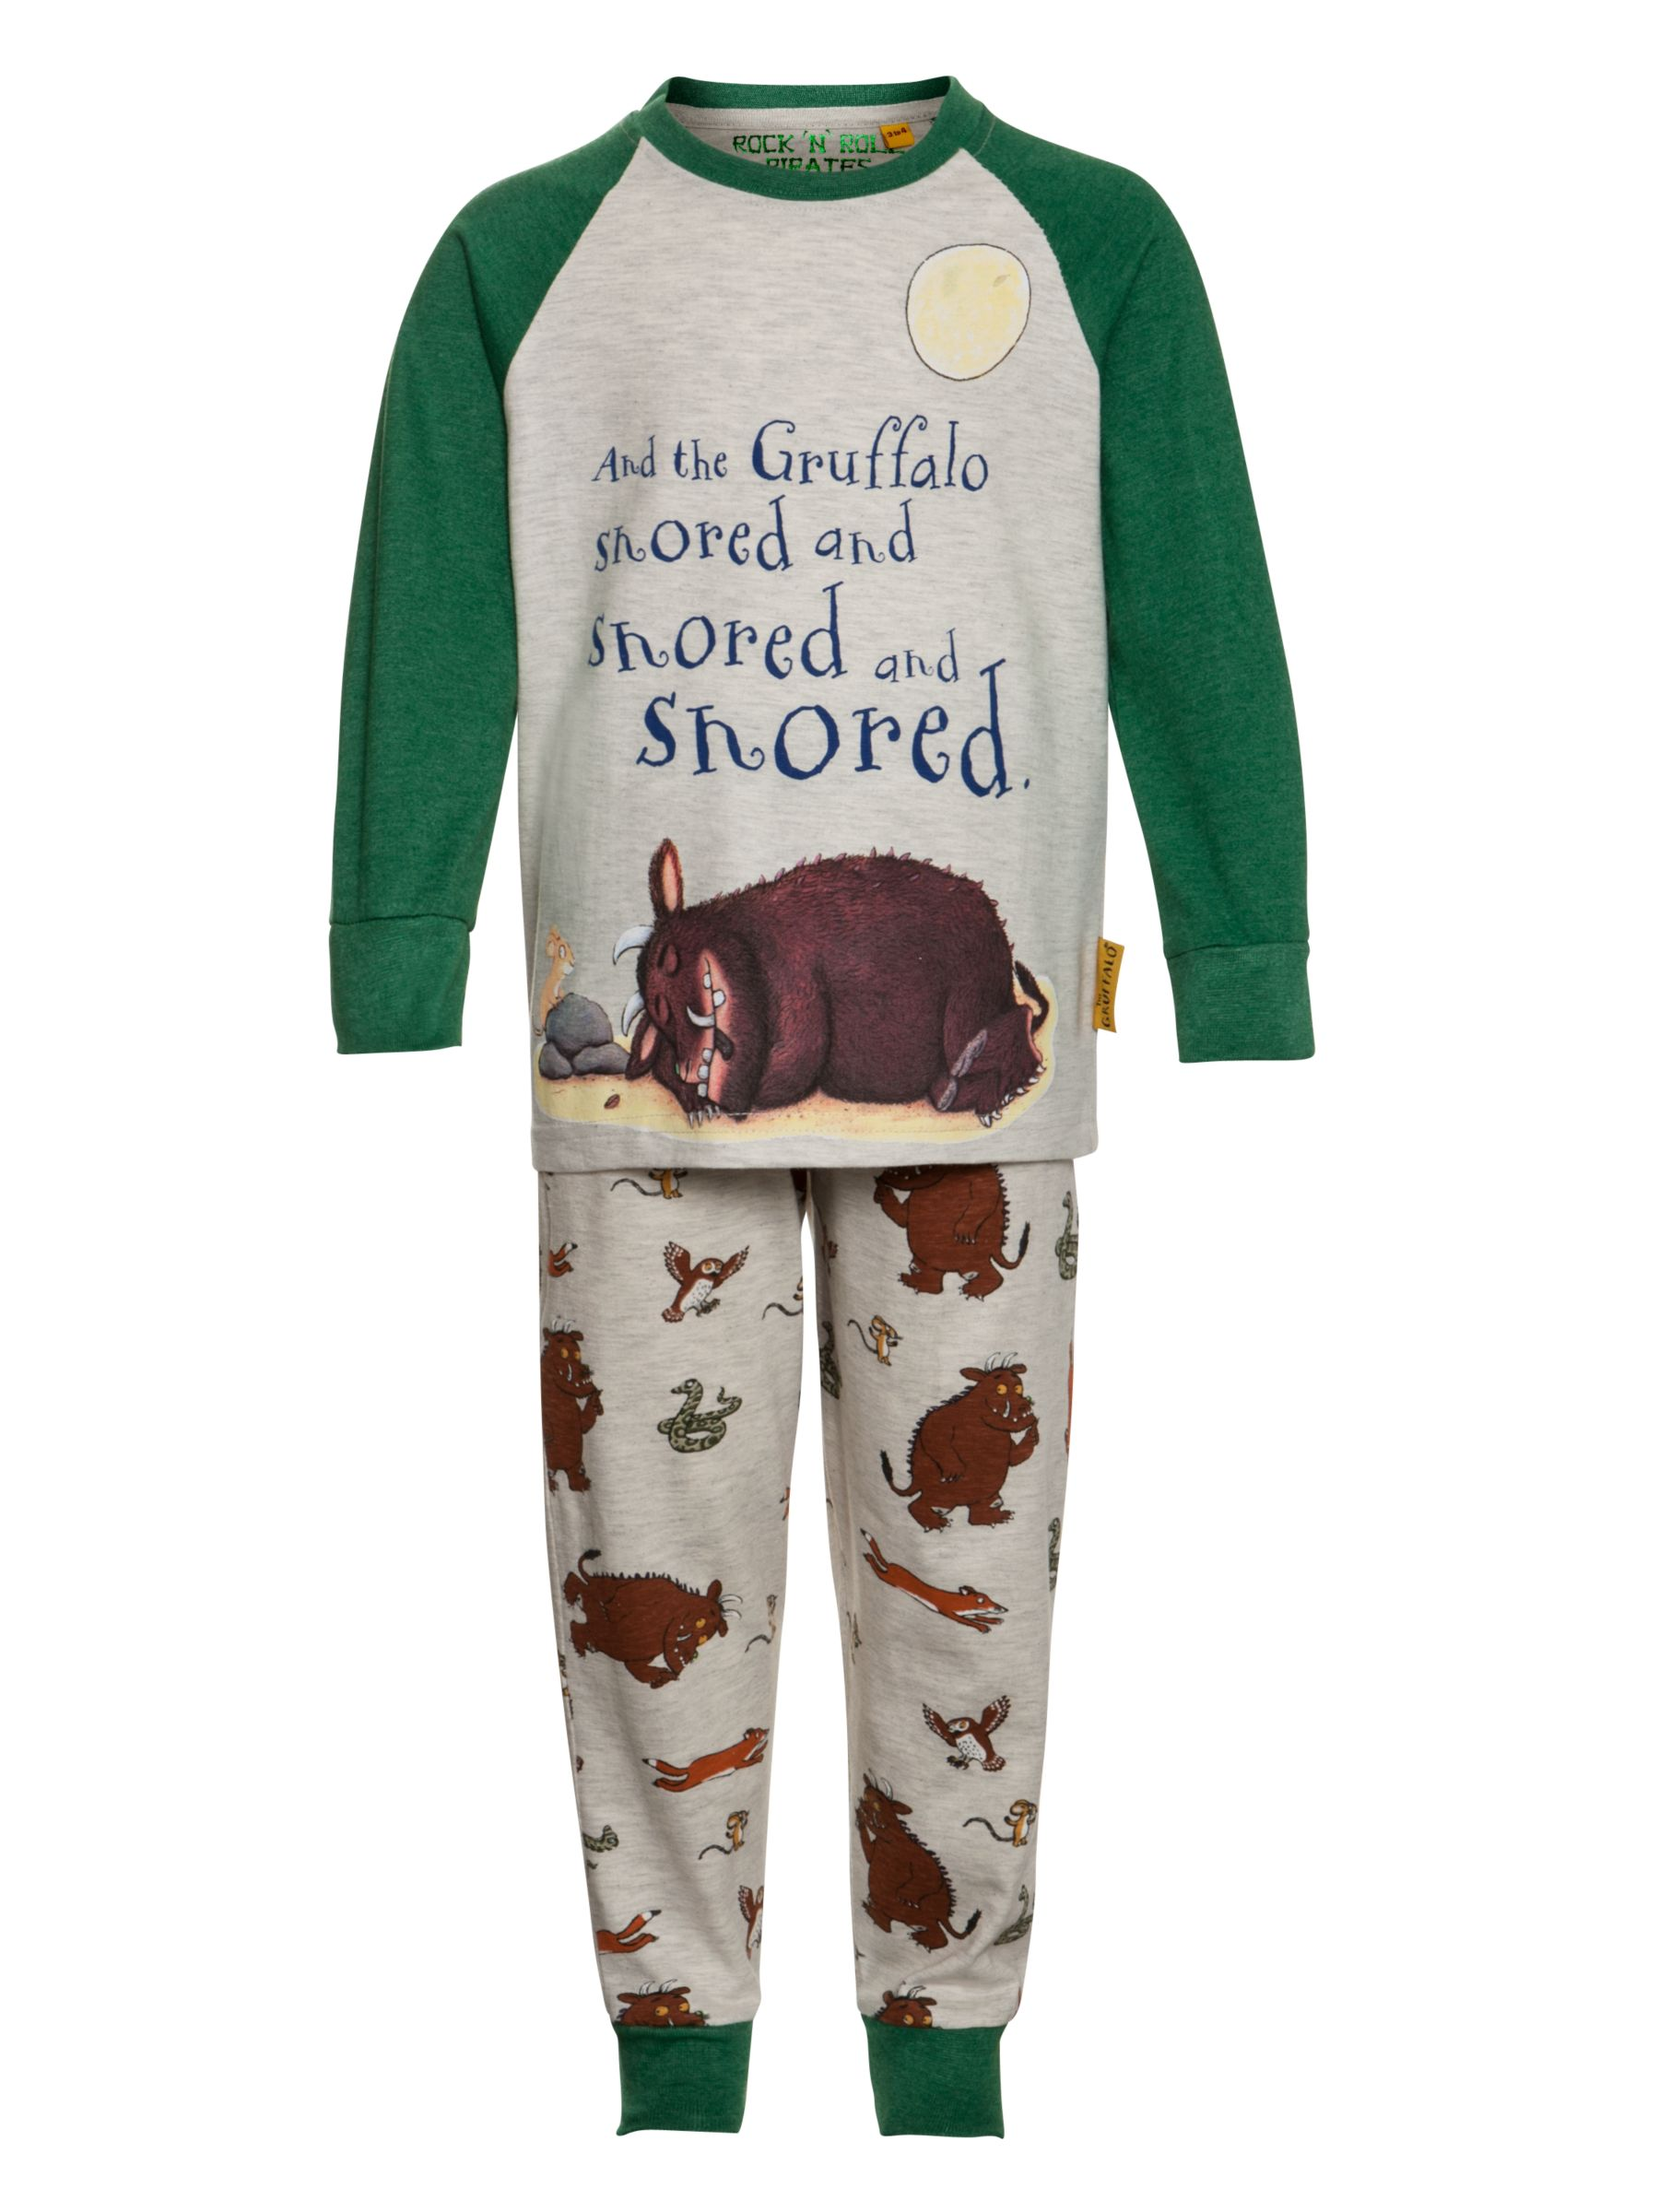 Gruffalo Pyjama Set, Grey/Green